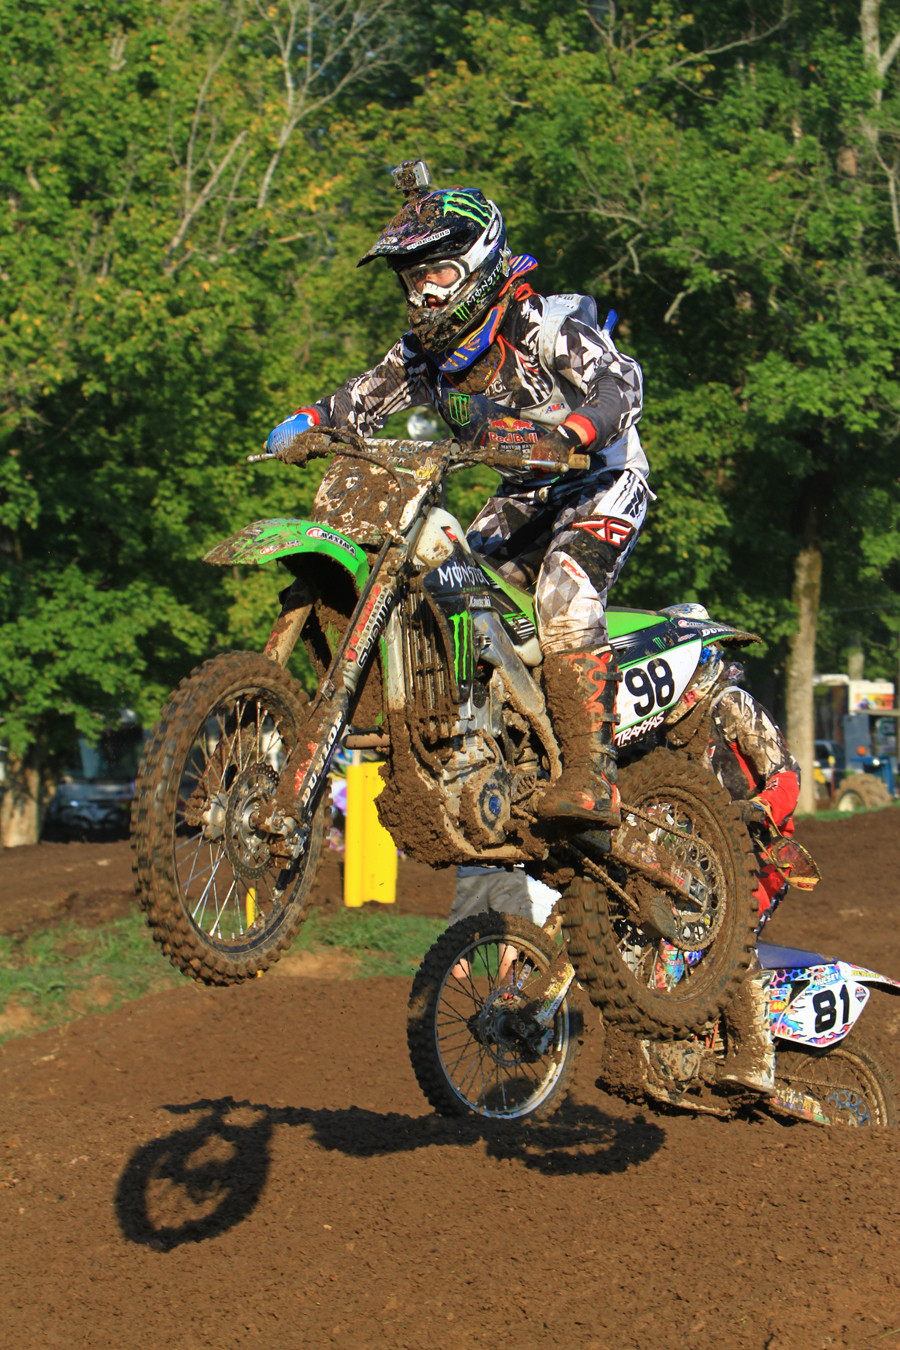 Brandy Richards - Day 2: 2012 Red Bull AMA Amateur National Motocross Championships - Motocross Pictures - Vital MX